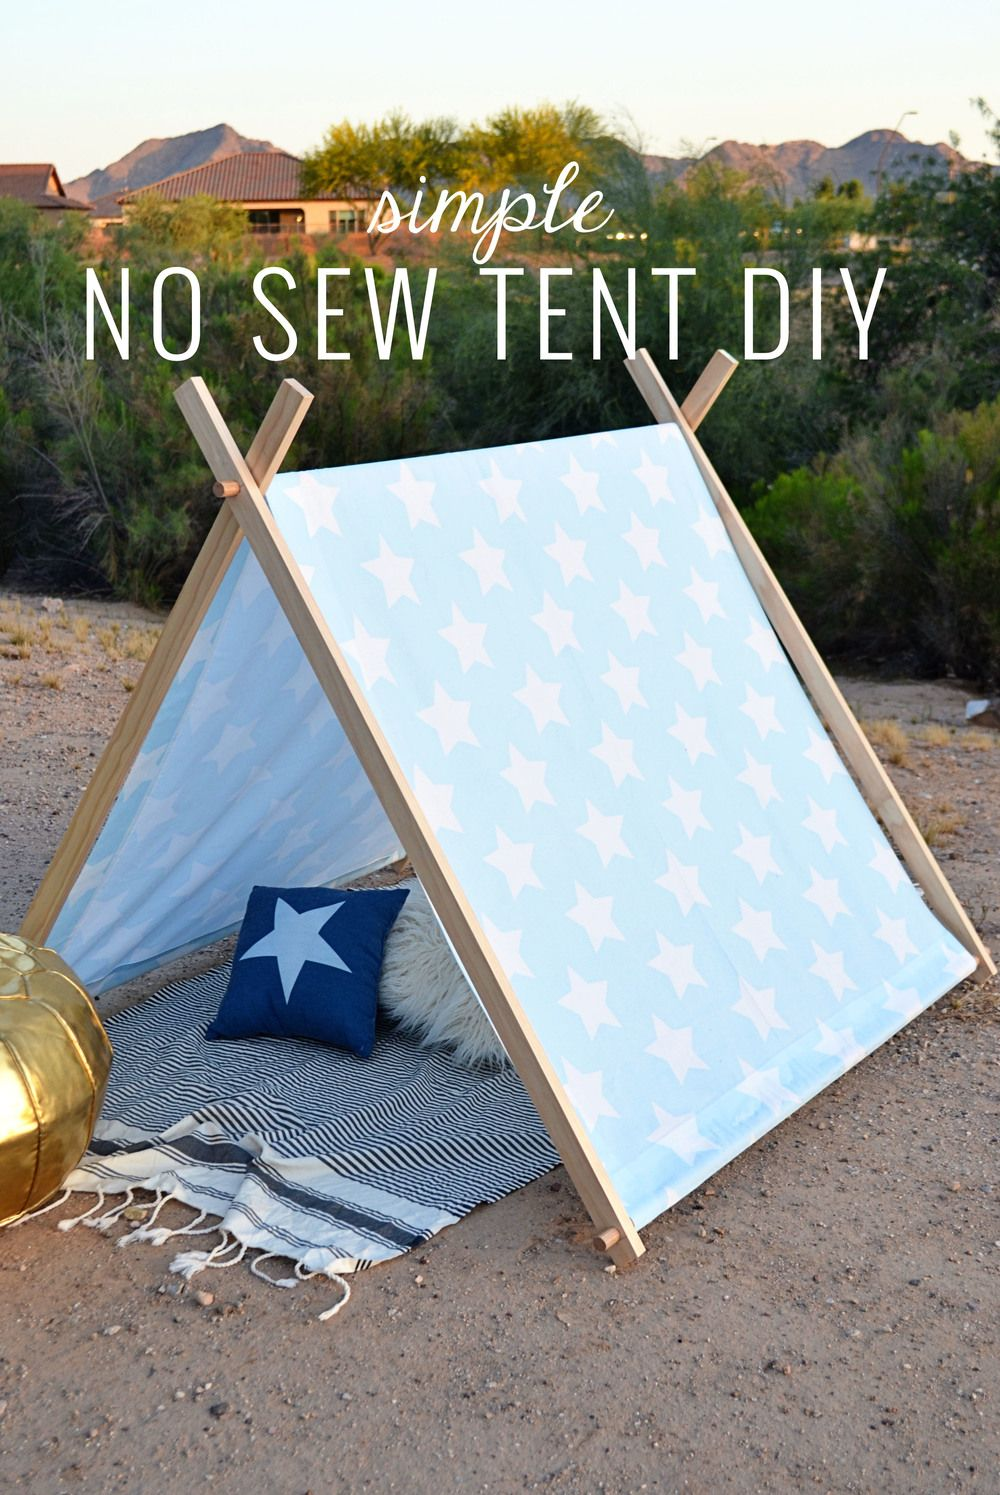 Simple No Sew Kid's Tent DIY | Diy tent, Diy kids teepee, Kids tents